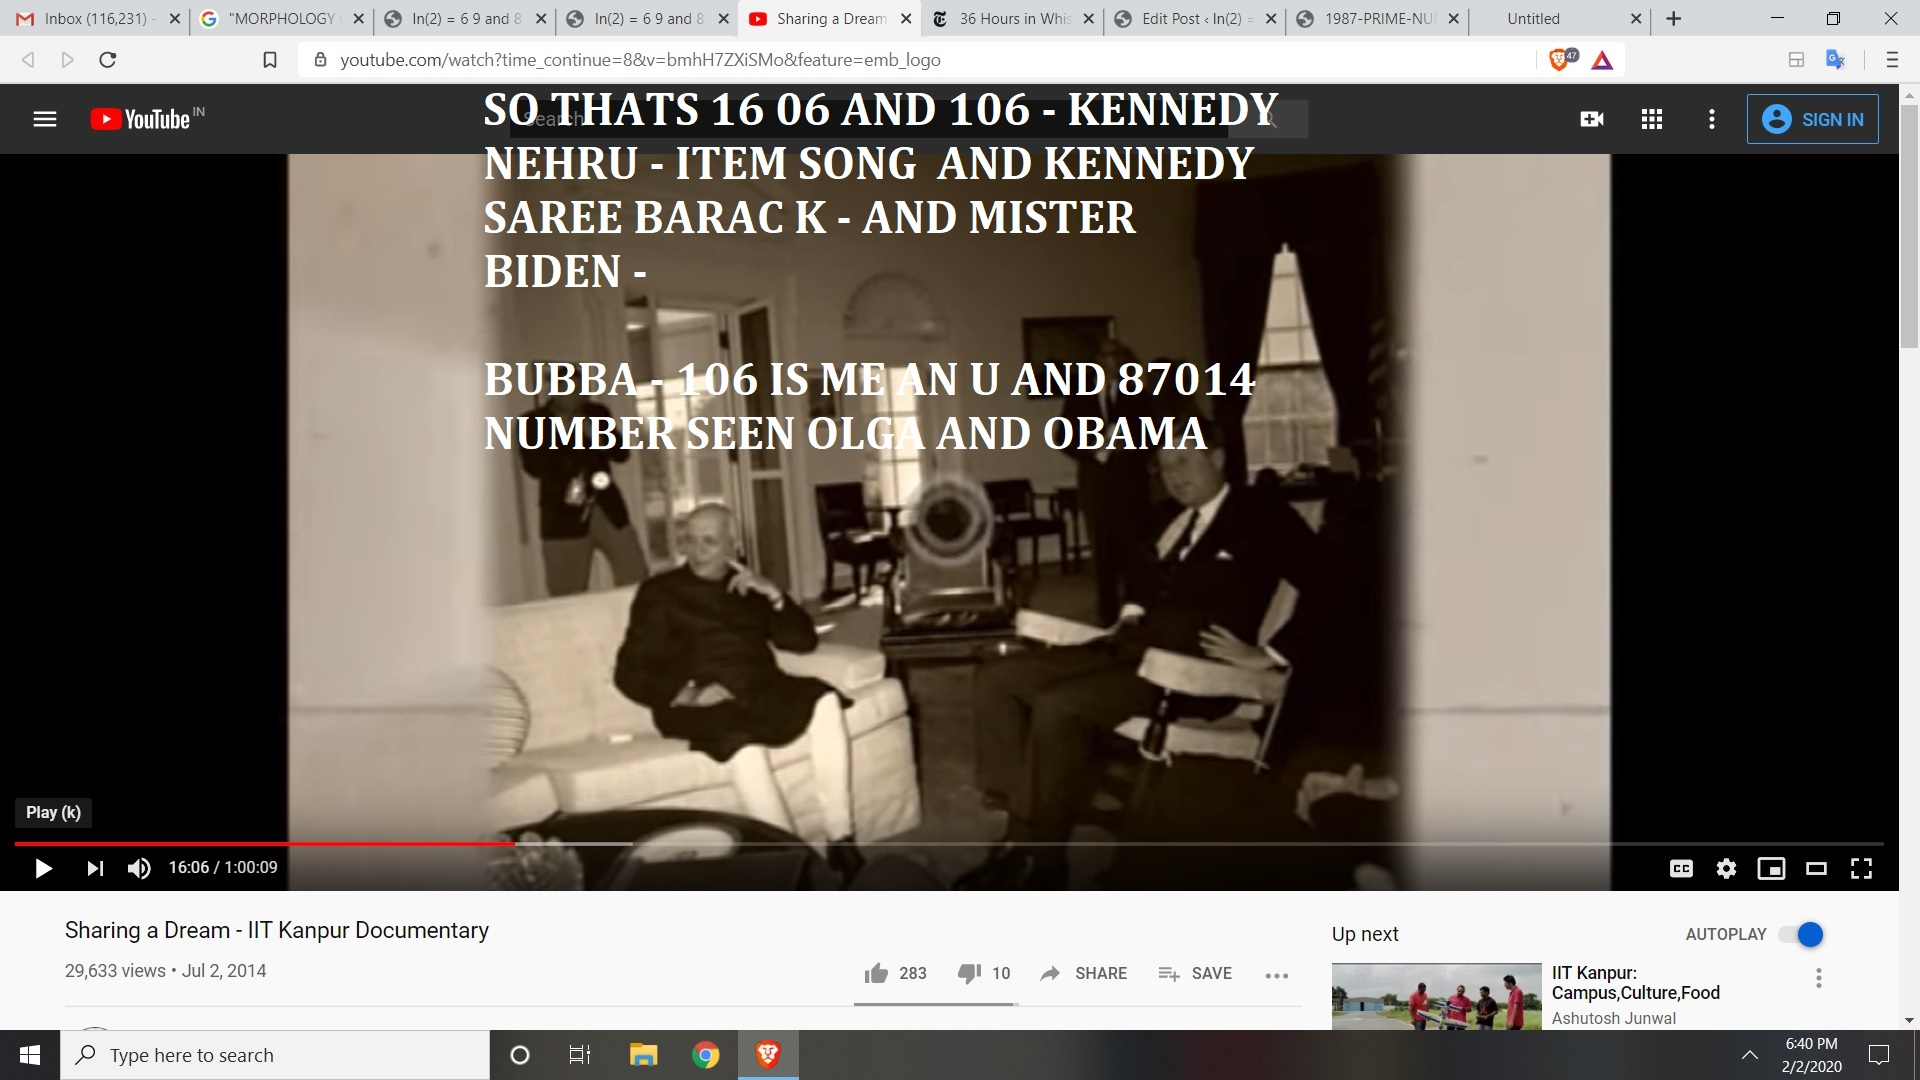 SO THATS 16 06 AND 106 - KENNEDY NEHRU - ITEM SONG AND KENNEDY SAREE BARAC K - AND MISTER BIDEN -